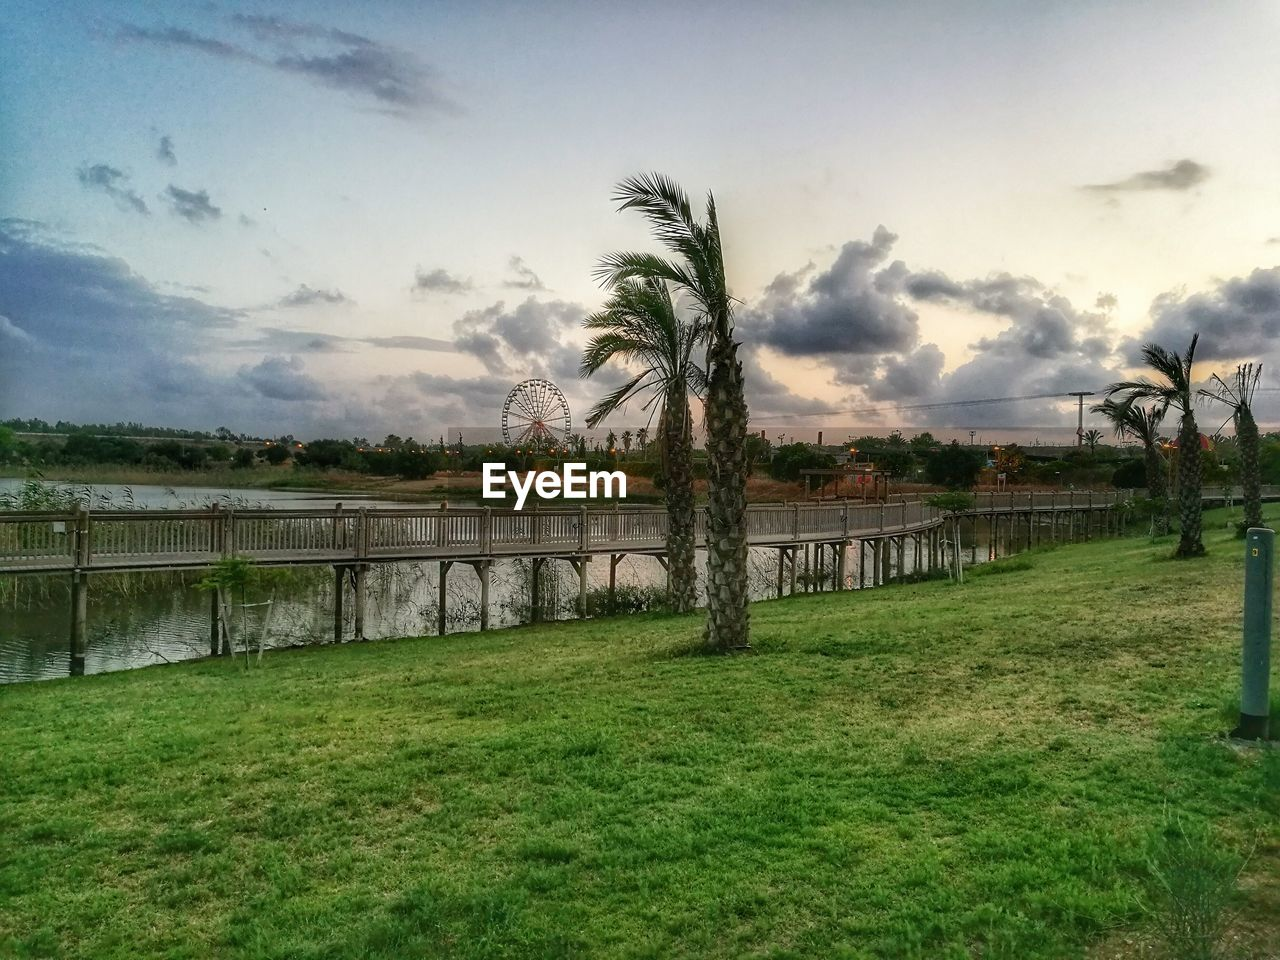 grass, sky, tree, water, cloud - sky, nature, green color, field, river, scenics, outdoors, bridge - man made structure, built structure, palm tree, landscape, day, no people, growth, architecture, beauty in nature